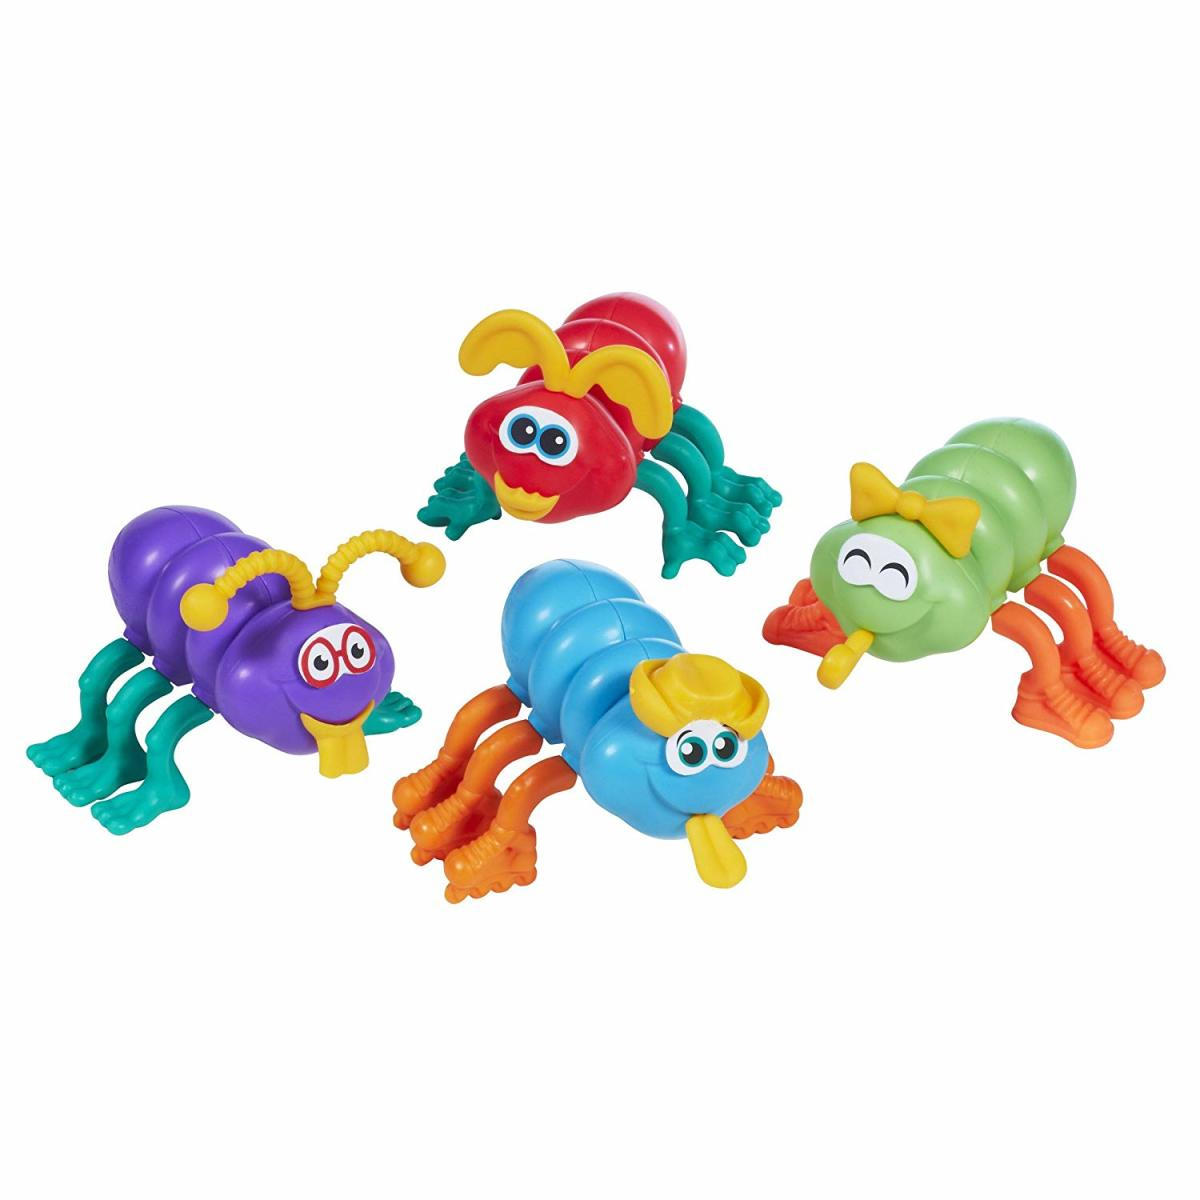 Assembled Cootie bugs